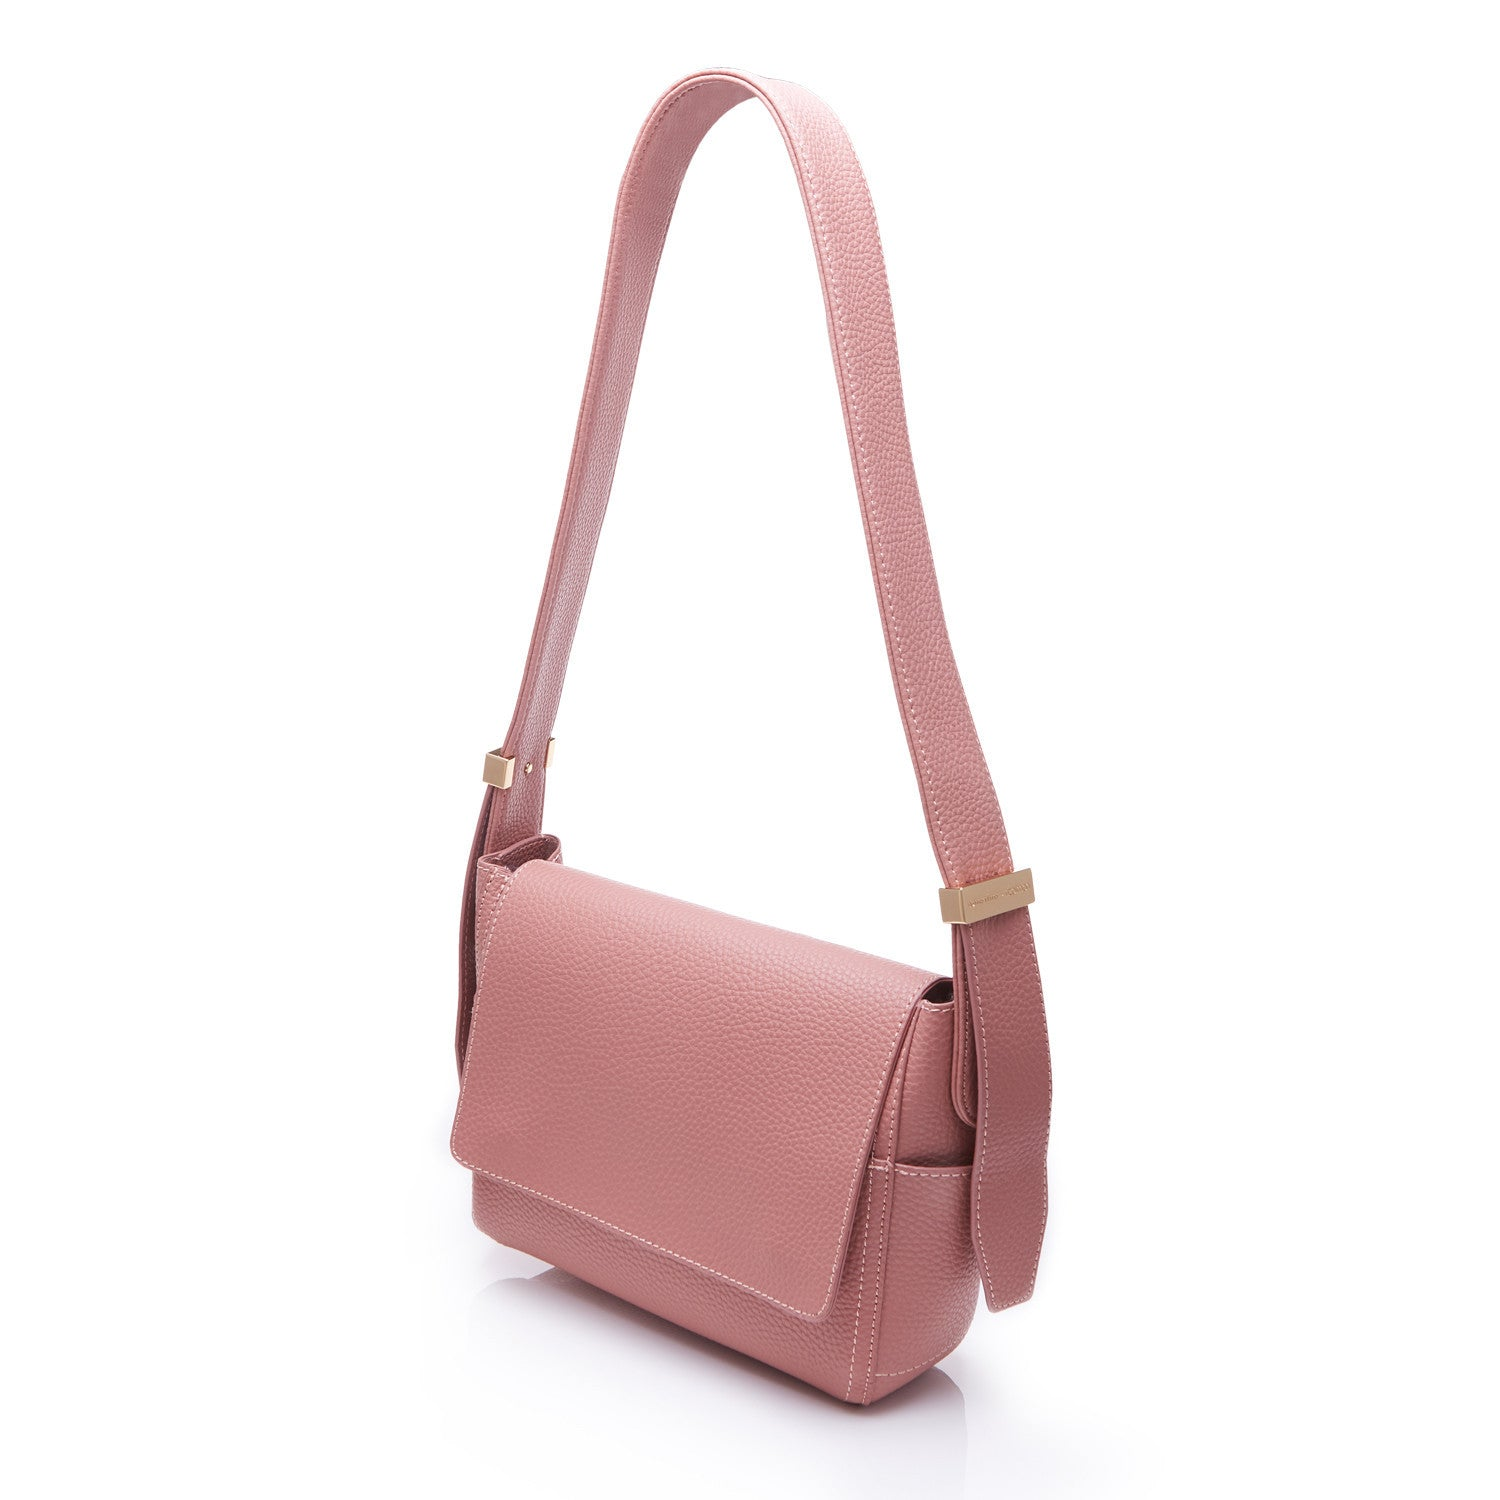 RIBAG MINI - DUSTY ROSE